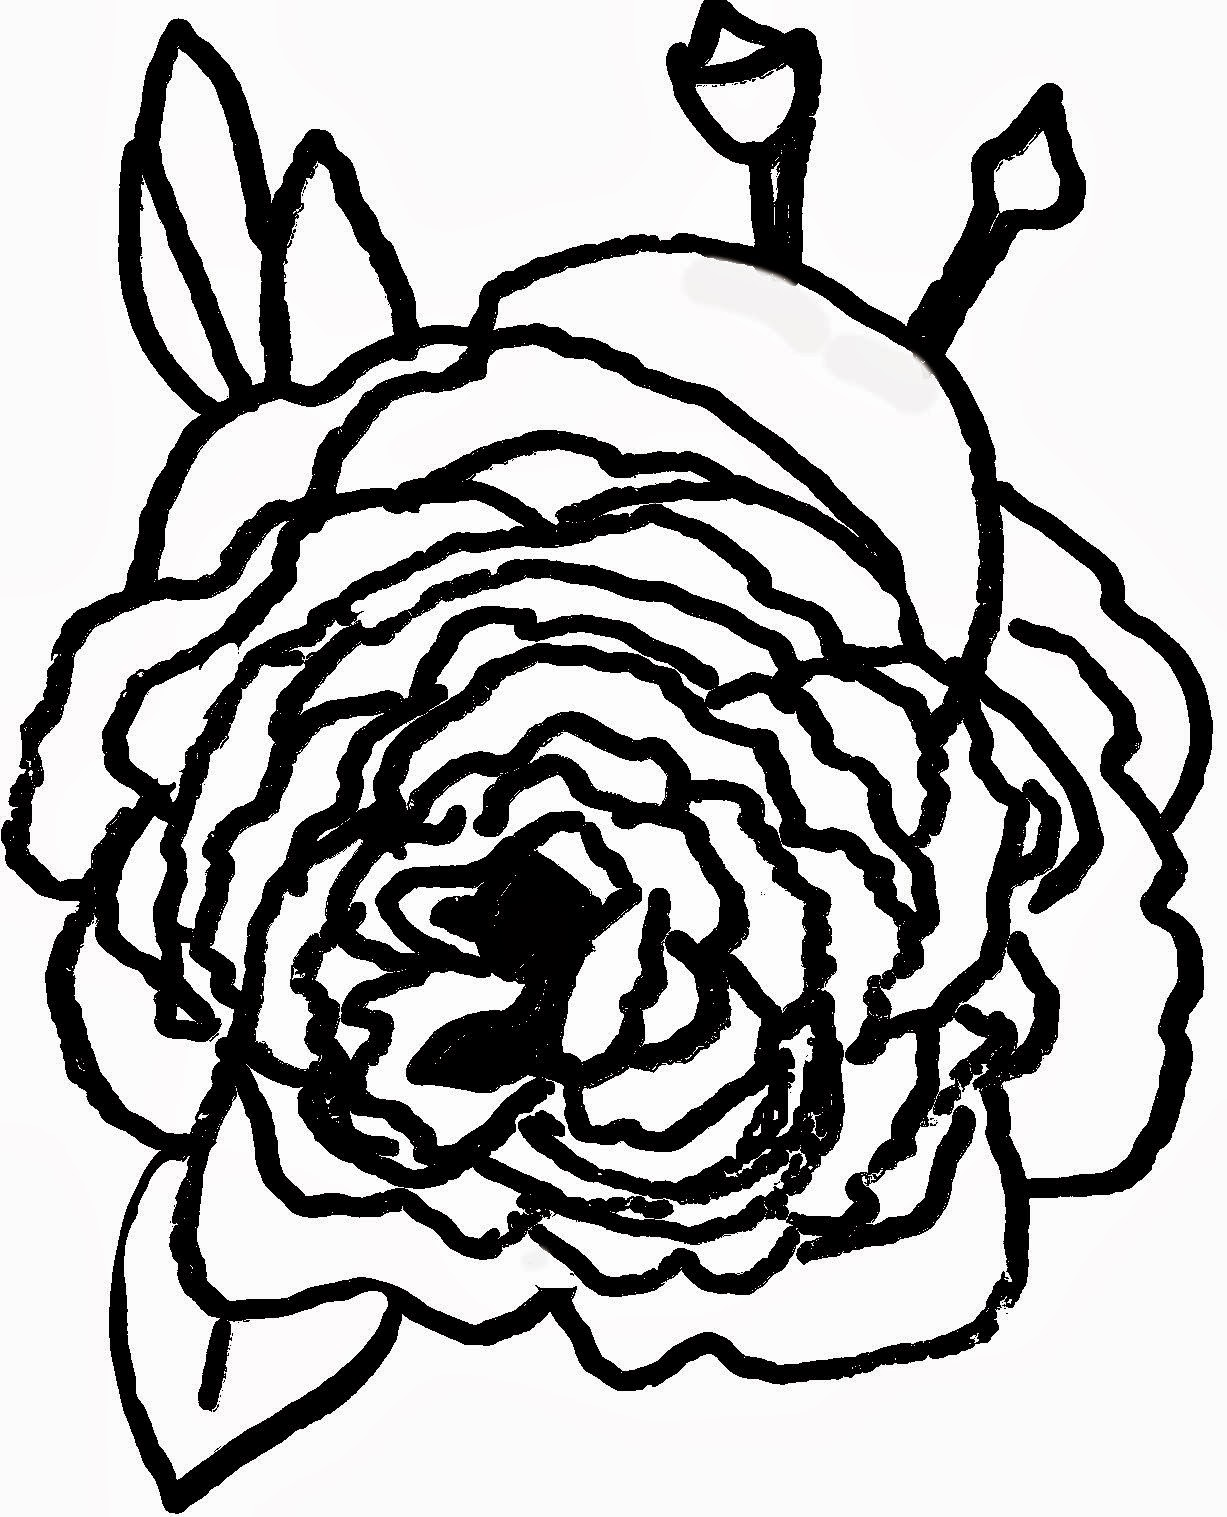 Christian Images In My Treasure Box: Home Drawn Roses